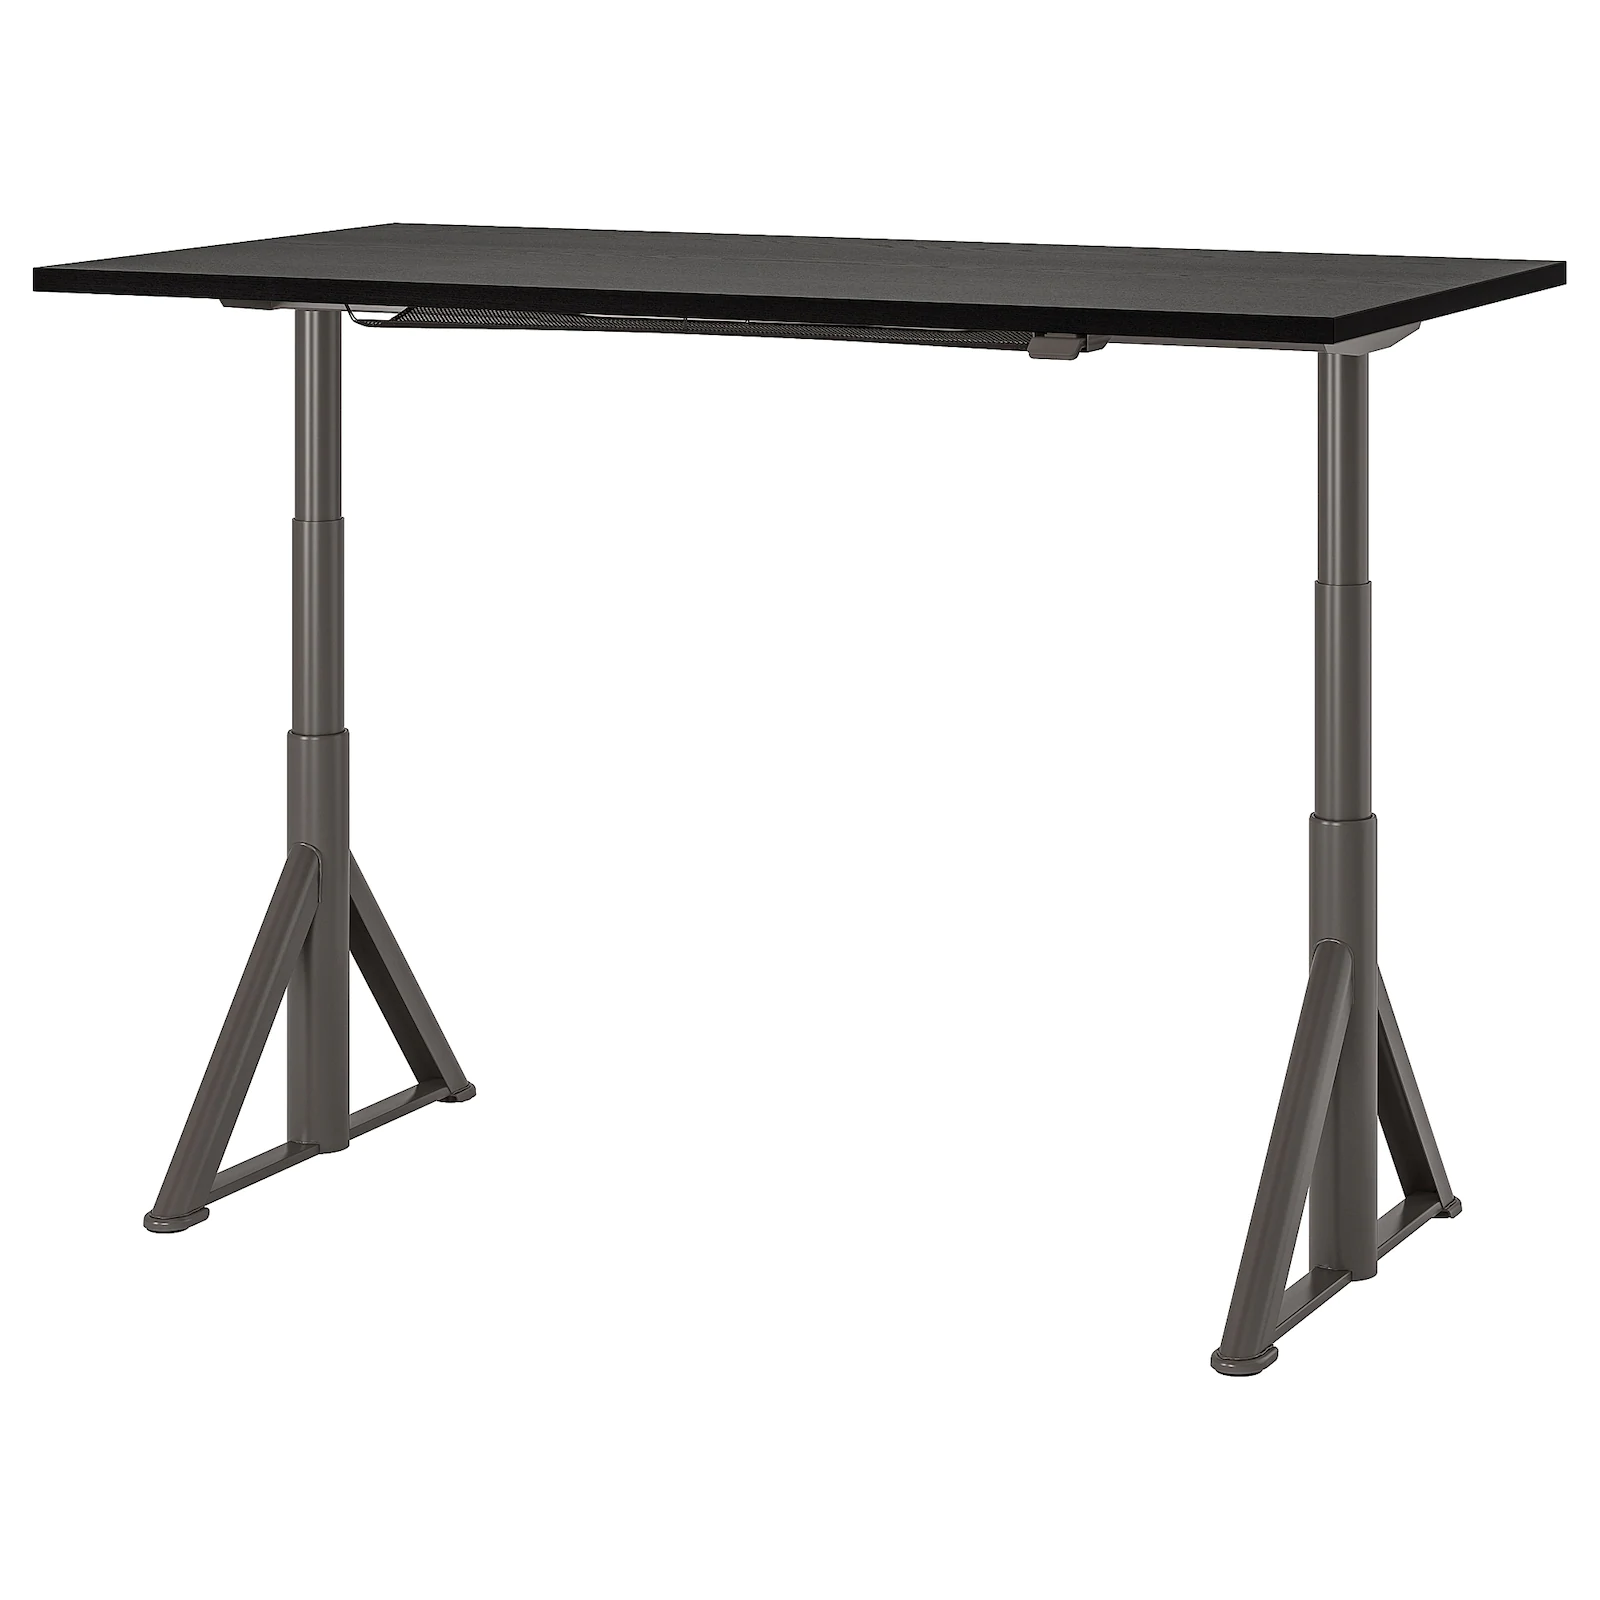 IKEA IDÅSEN Sit/Stand Desk for those willing to spend generously on a standing desk that can be adjusted with the help of a mobile phone